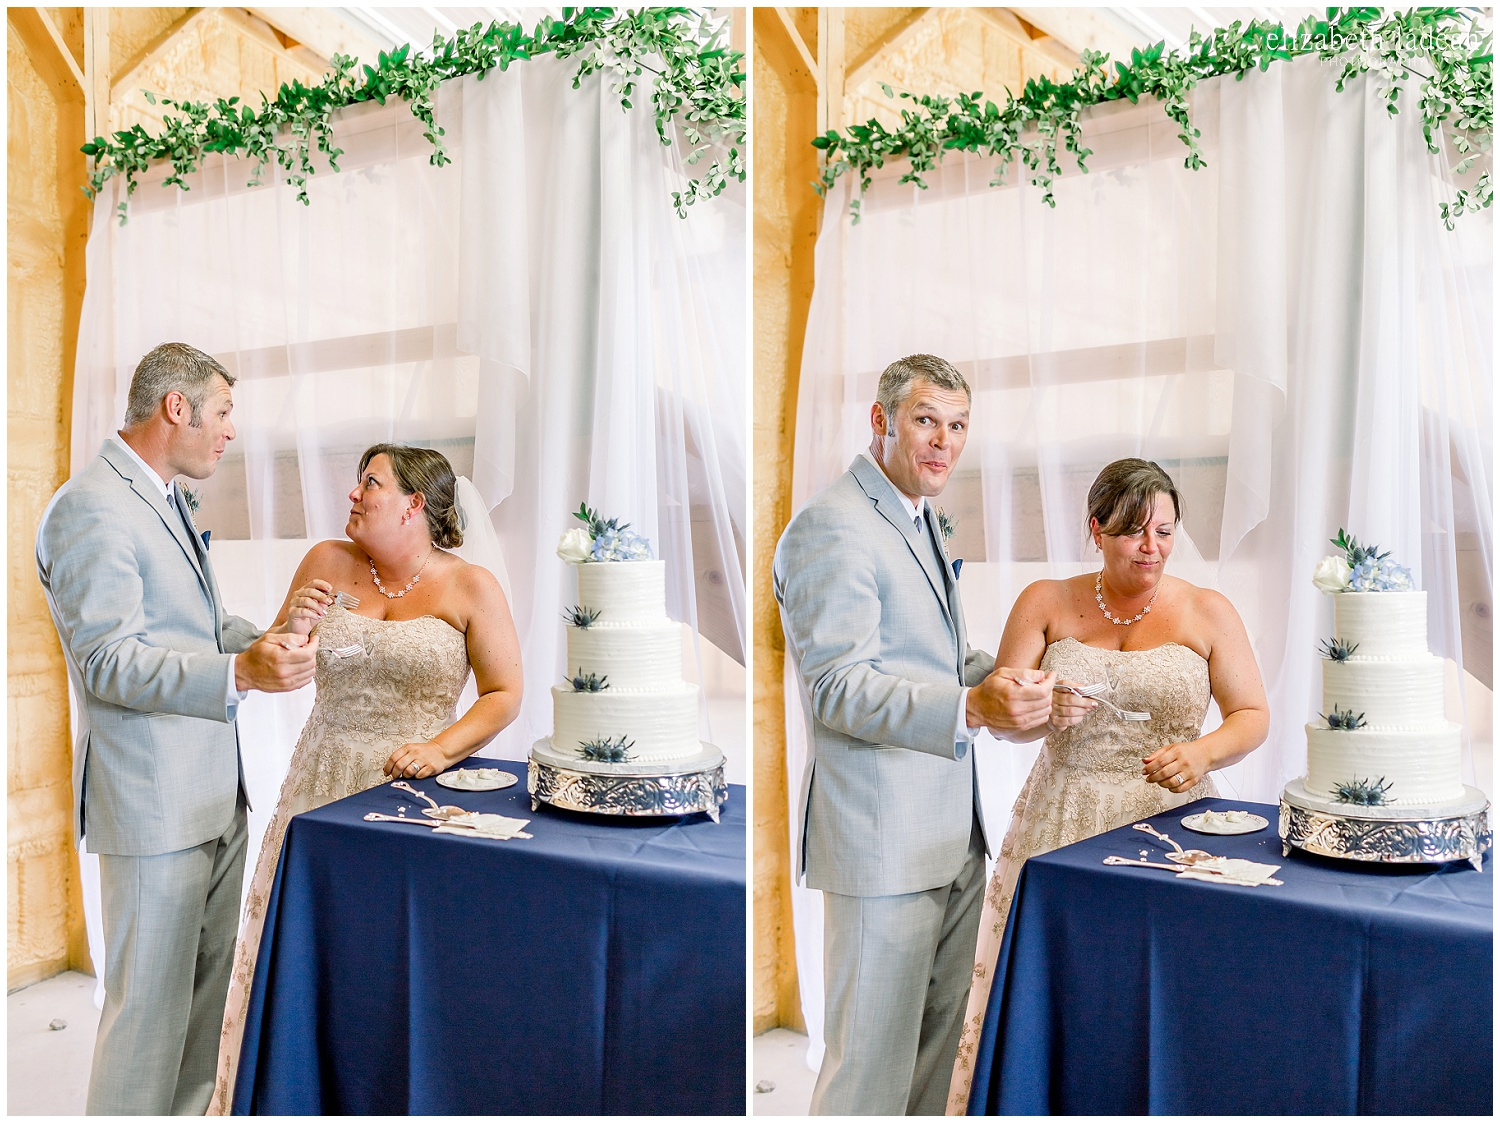 -behind-the-scenes-of-a-wedding-photographer-2018-elizabeth-ladean-photography-photo_3475.jpg